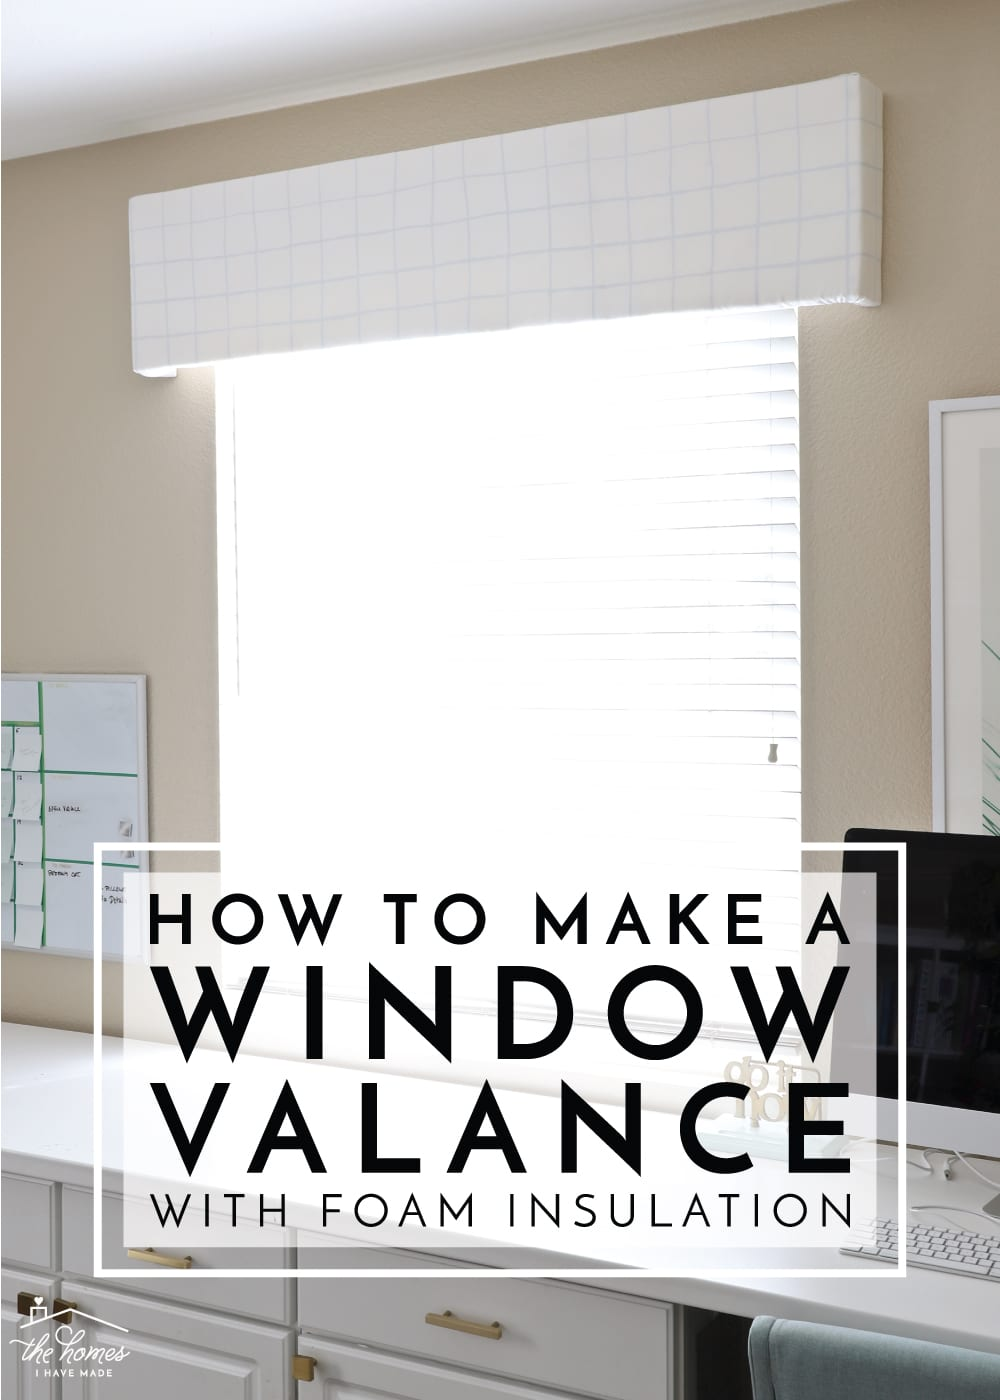 How To Make A Window Valance With Foam Insulation The Homes I Have Made